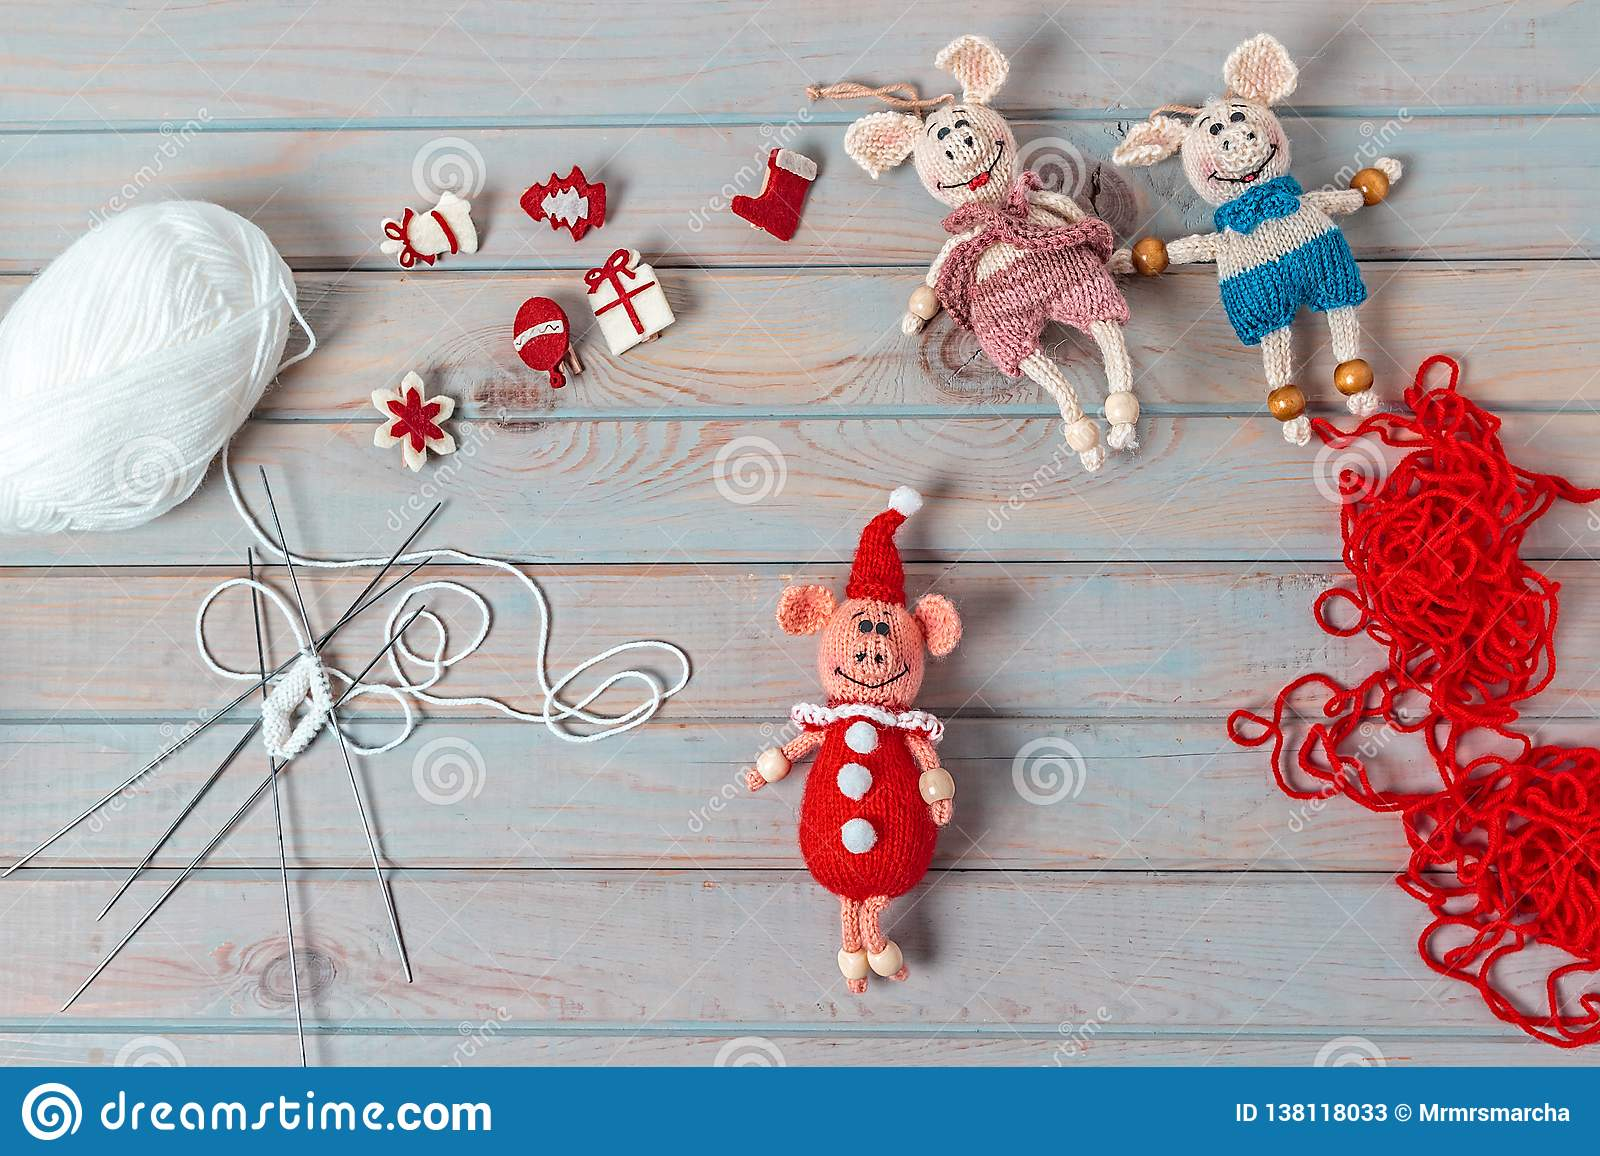 Christmas Gifts Handmade.Christmas Gifts Handmade Wooden Background Top View